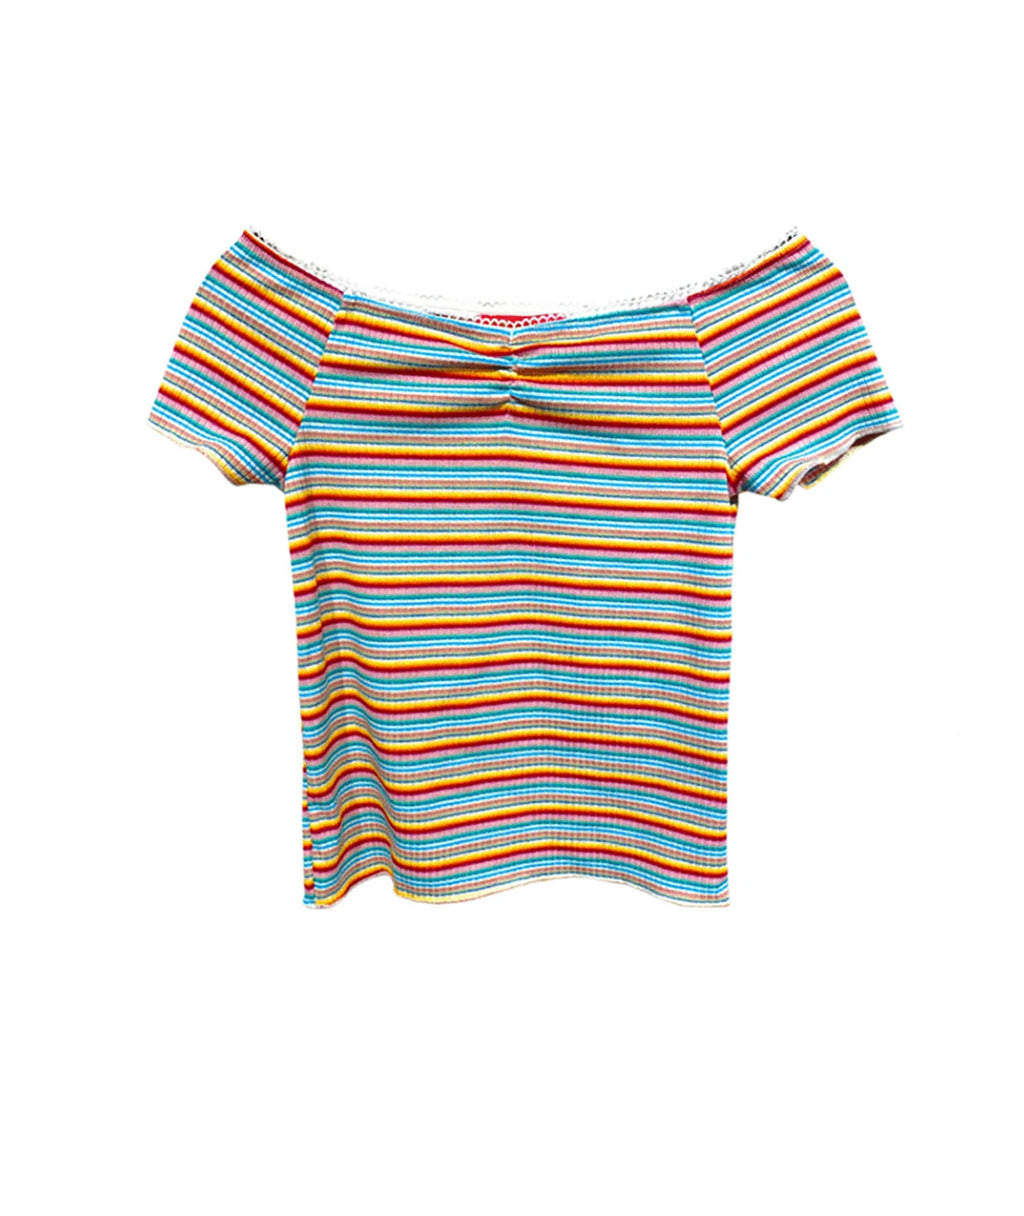 Me.n.u. Girls Off-Shoulder Rainbow Ribbed Top